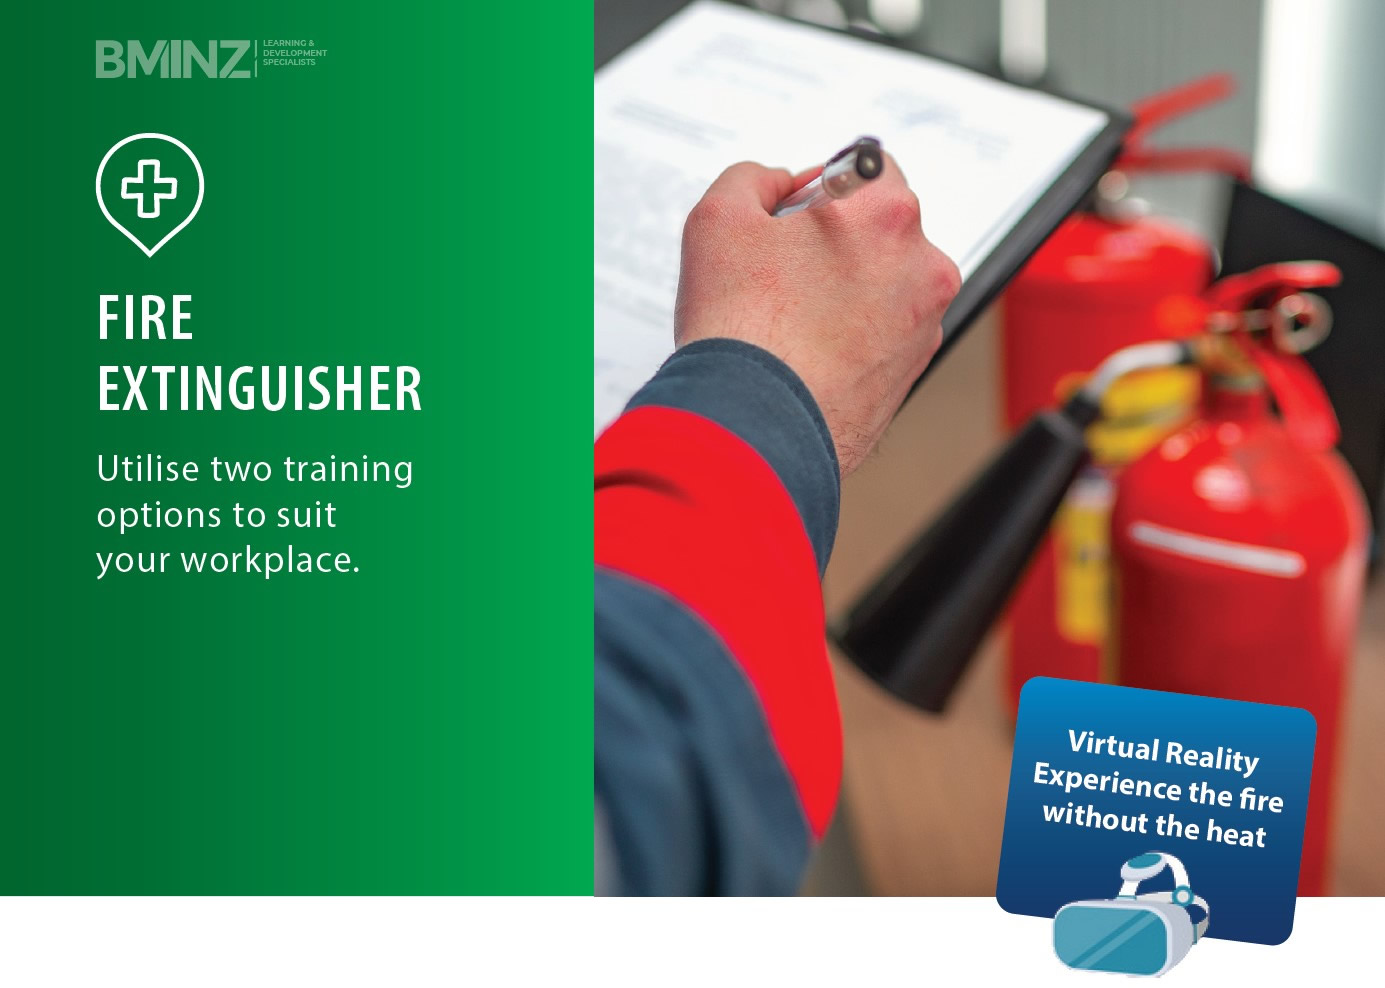 FIRE EXTINGUISHER: Utilise two training options to suit your workplace.